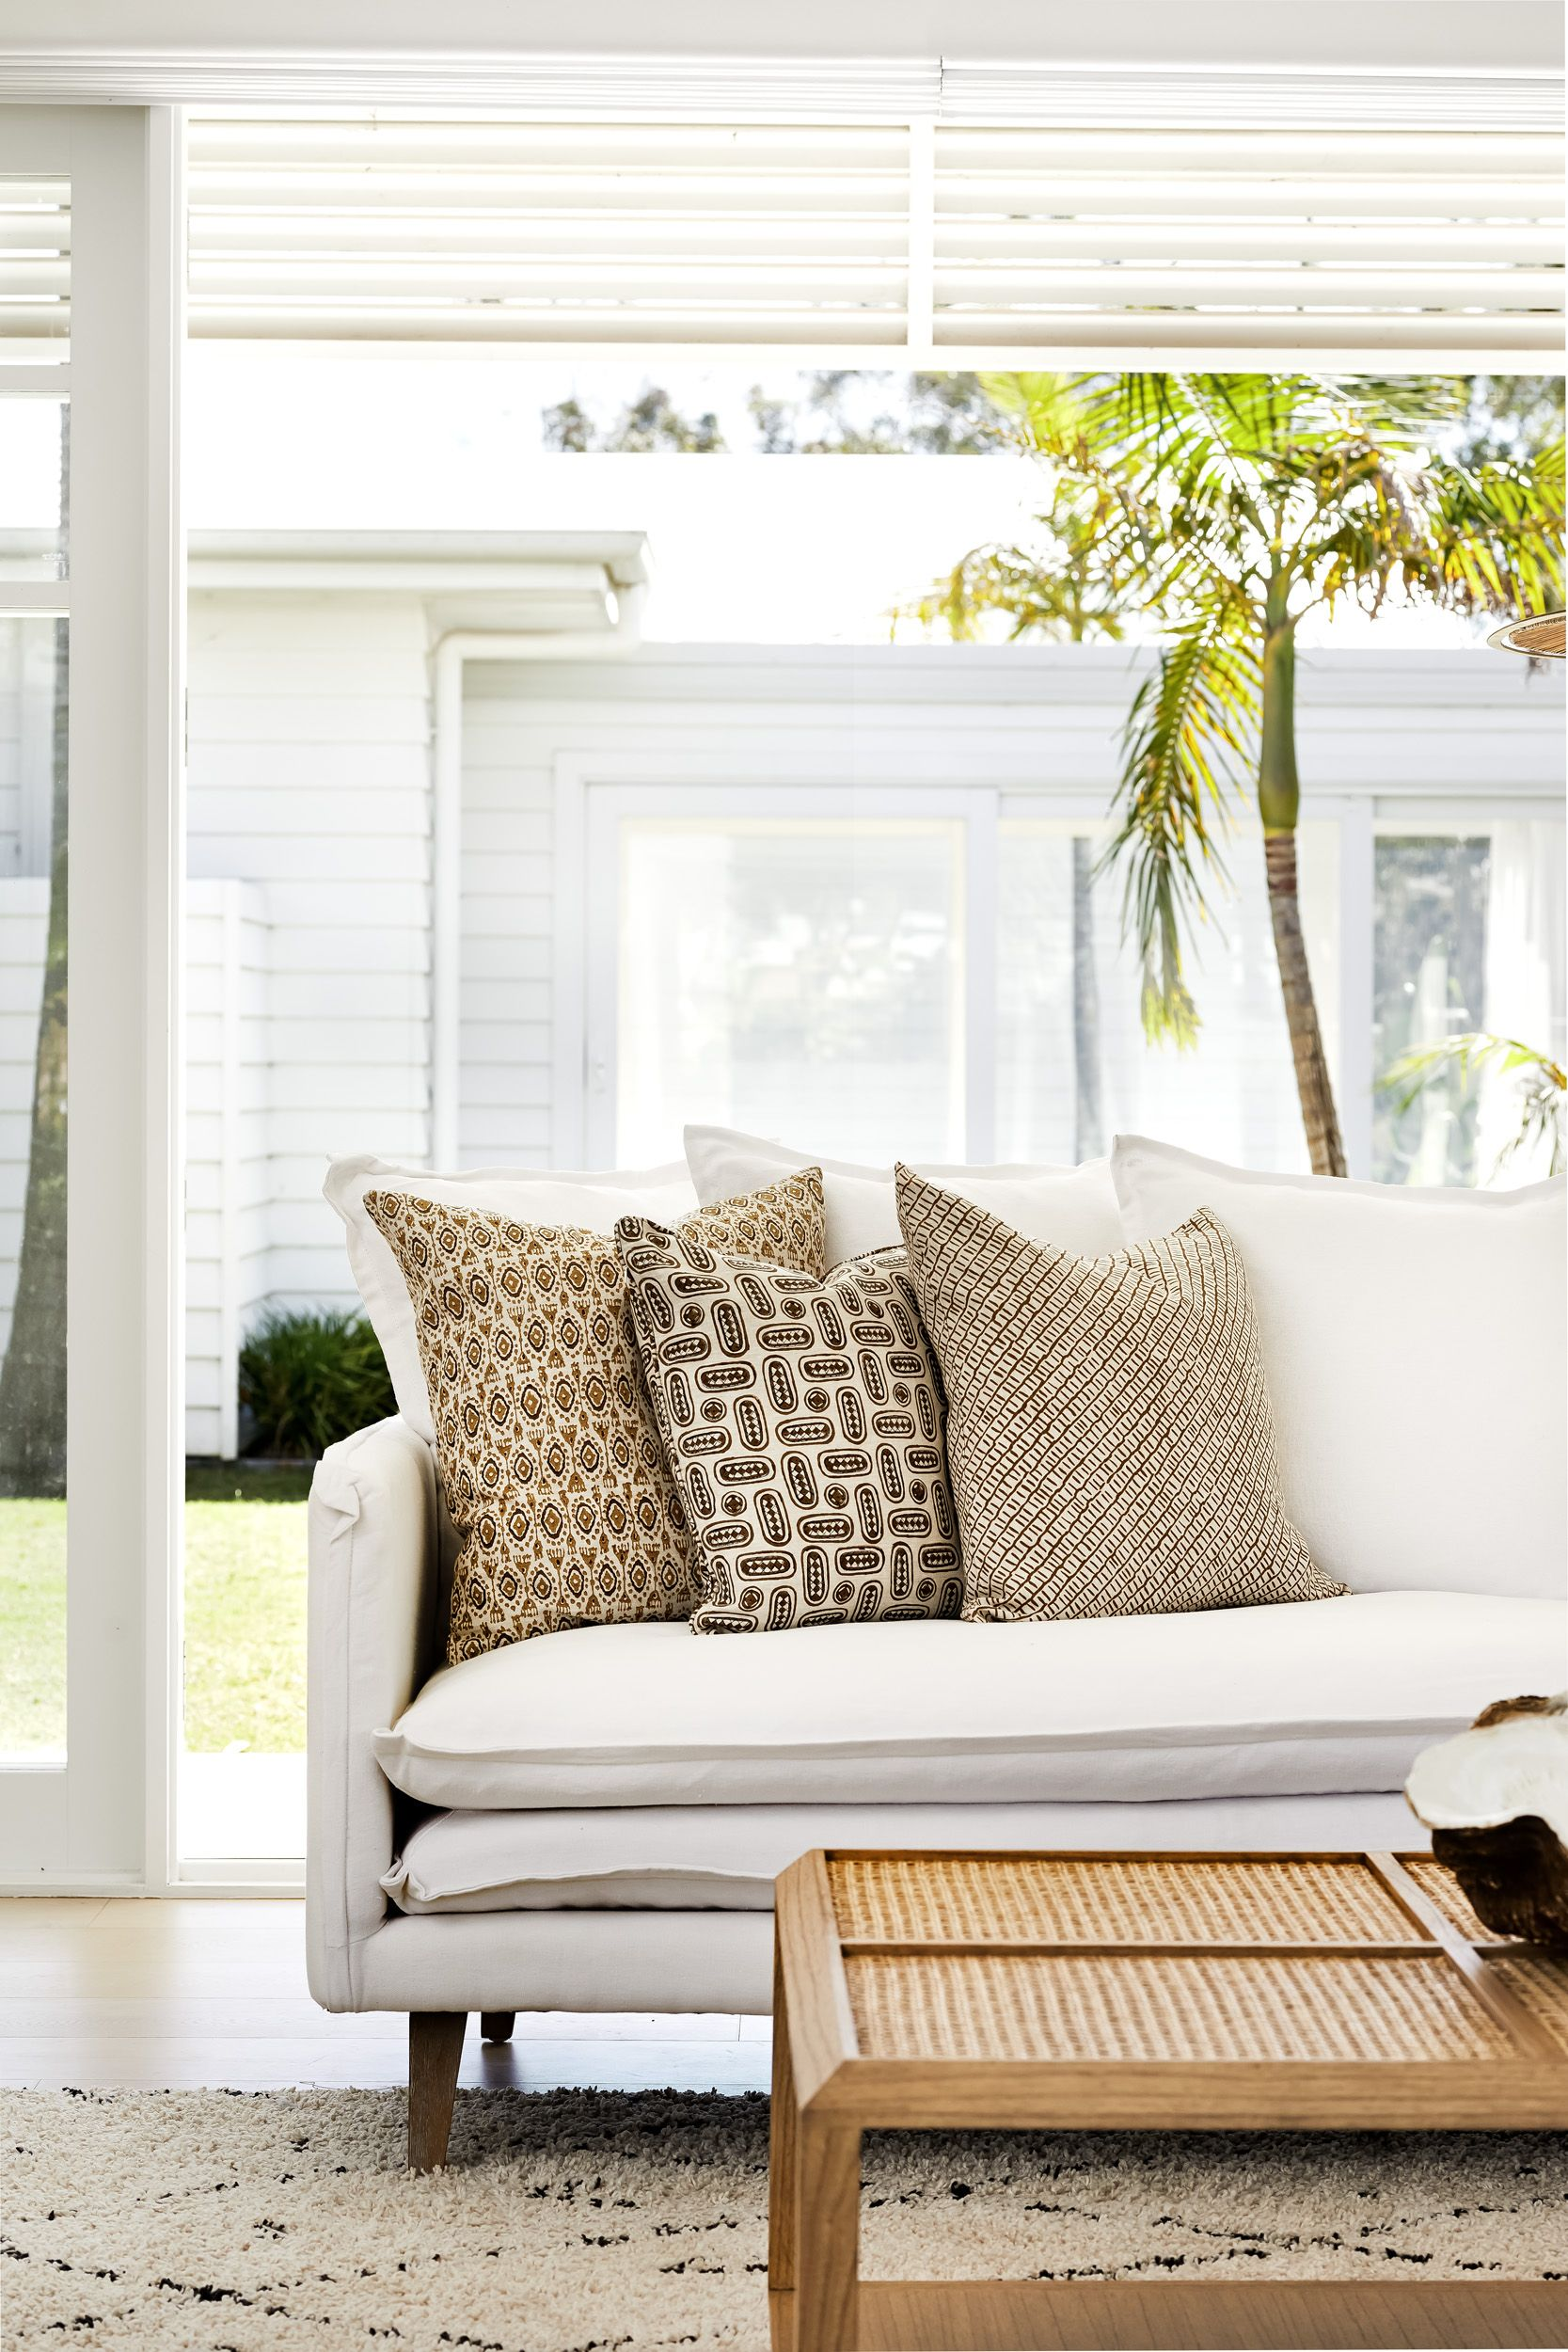 Can't go on a beach vacation this year?  Don't worry. With easy beach style furniture and decorating you can get all the ambience of a day at the beach without setting foot outside the house. It's an easy and versatile style that can be modified to suit any style of home.  Discover our essentials for coastal style interior online or visit our showrooms: www.lamaison.net.au  #lovelamaison#coastalinterior #livingroominterior #livingroomfurniture #coastalliving #sofadesign #coffeetable